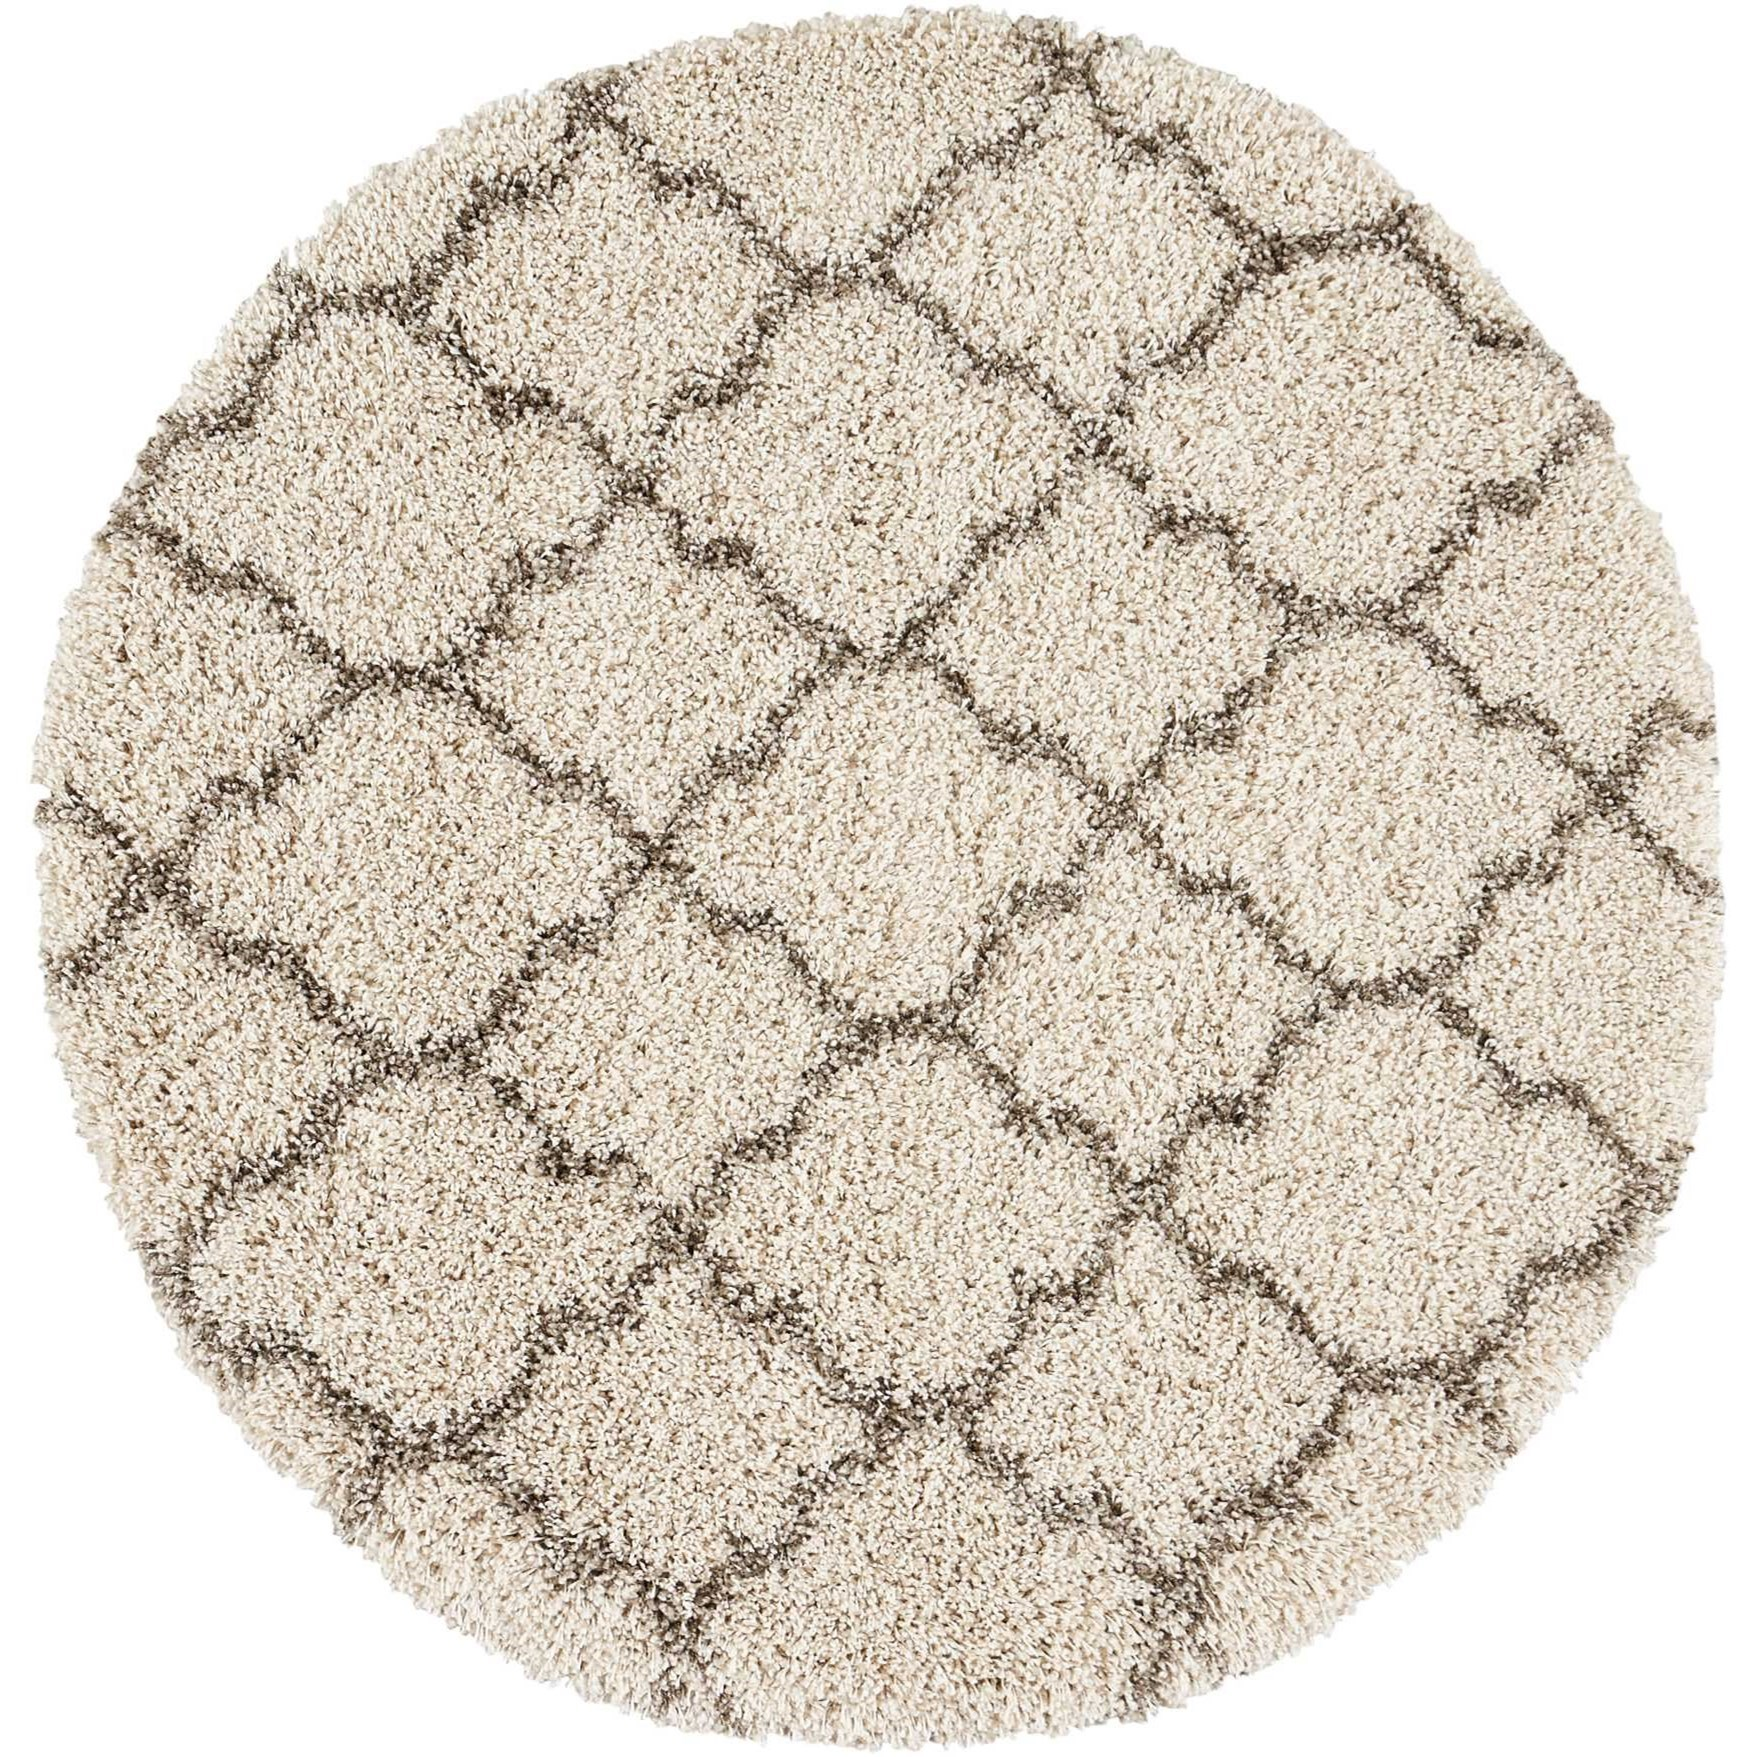 Amore Amore AMOR2 Beige 4' Round Area Rug by Nourison at Home Collections Furniture